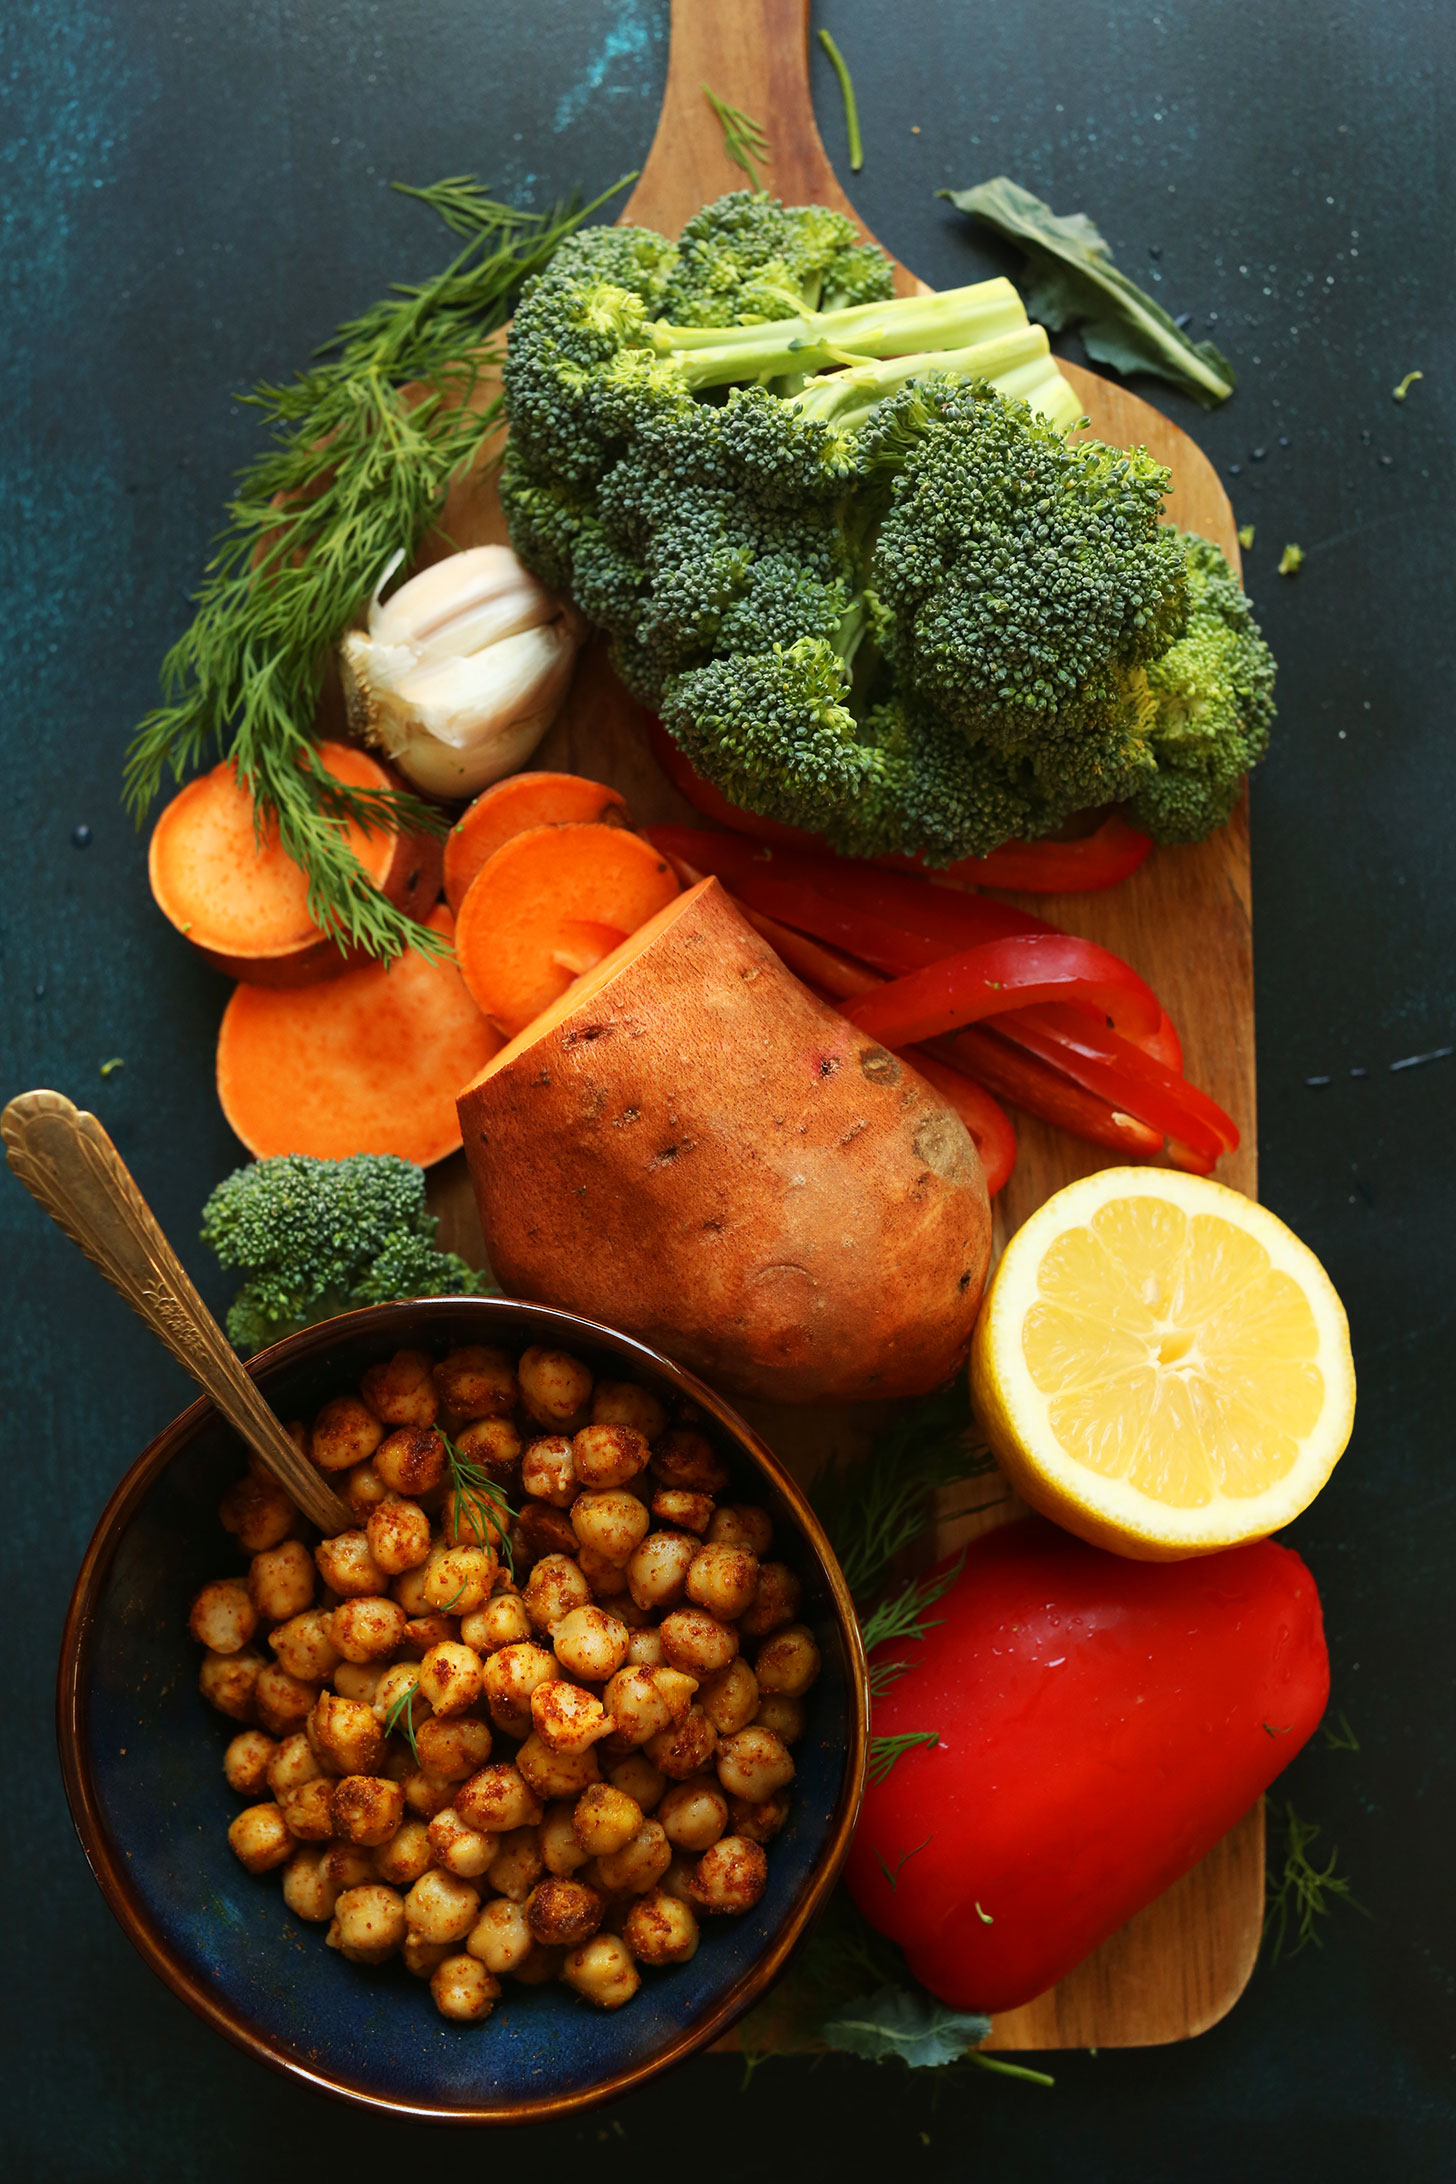 Chickpeas, lemon, sweet potato, bell pepper, broccoli, and garlic for making a healthy vegan meal